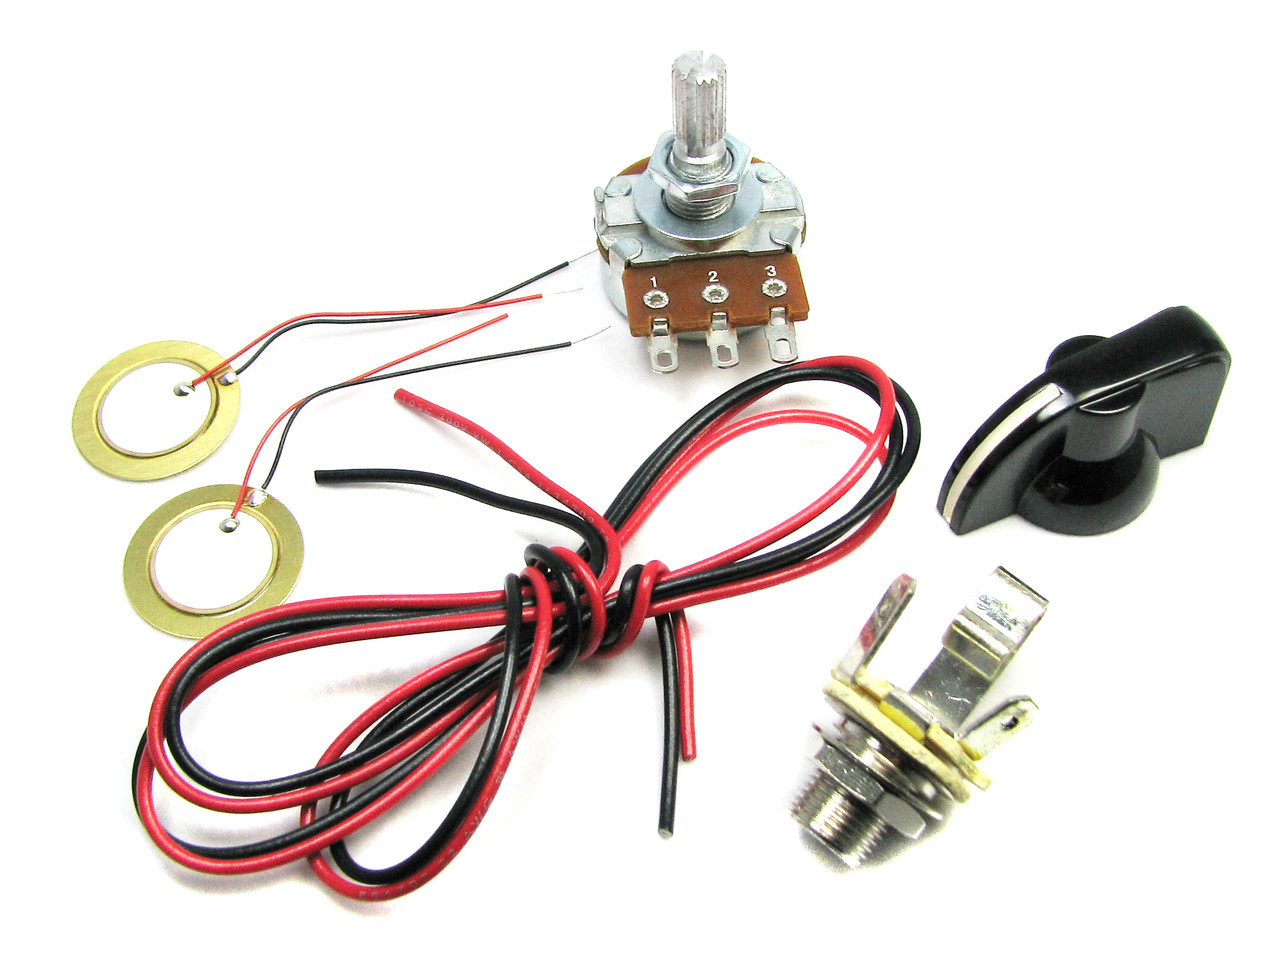 basic piezo pickup kit for cigar box guitar instructions included  [ 1280 x 963 Pixel ]